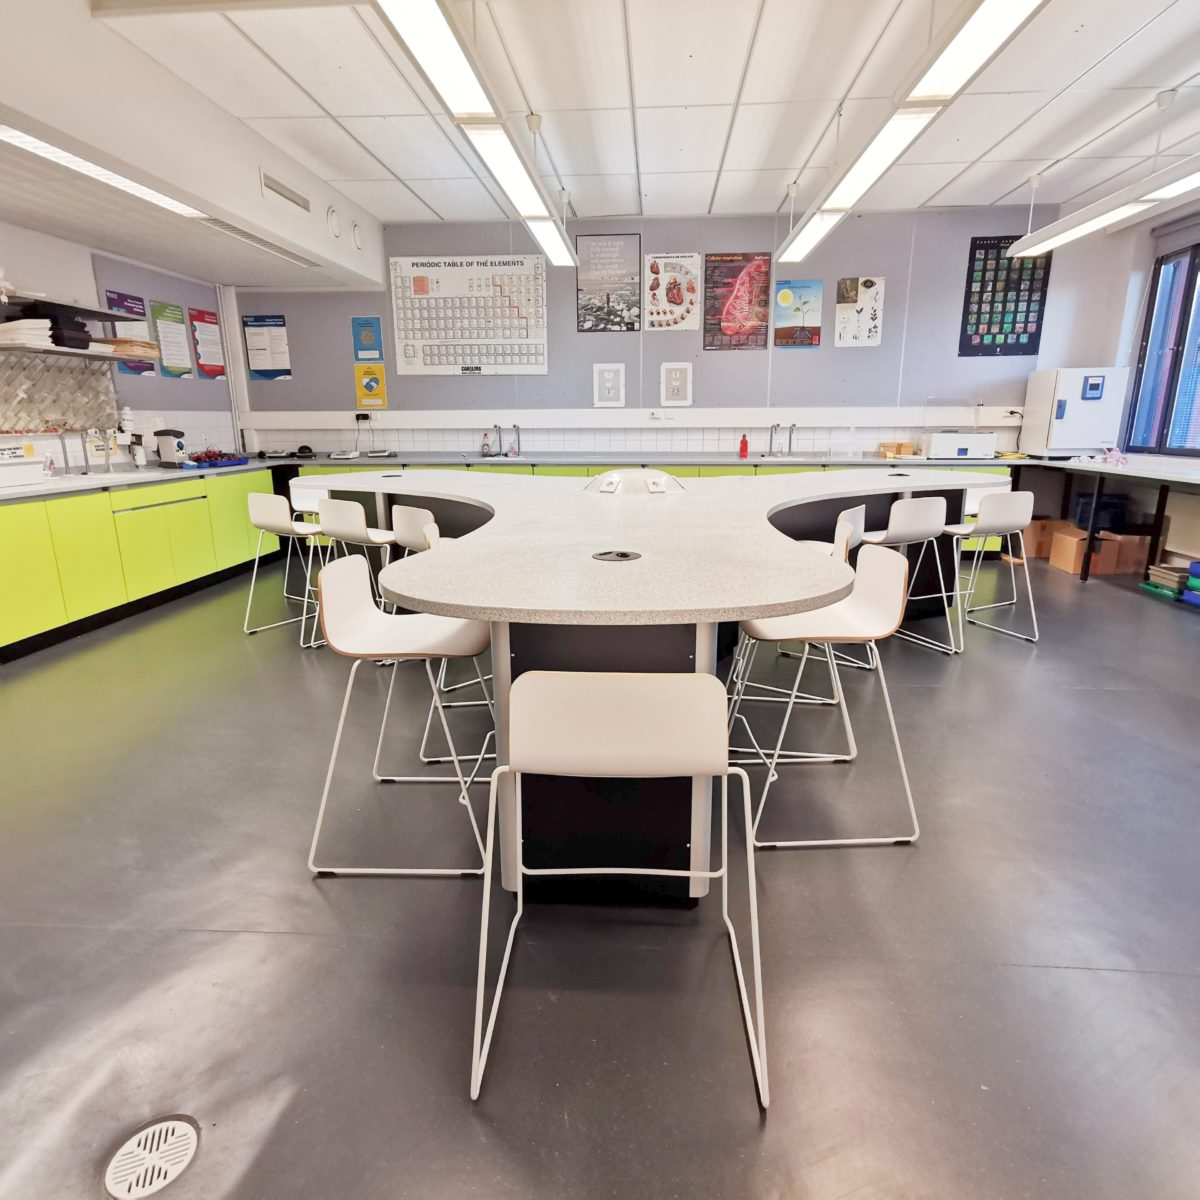 Science laboratory at International School of Helsinki installed by S+B UK